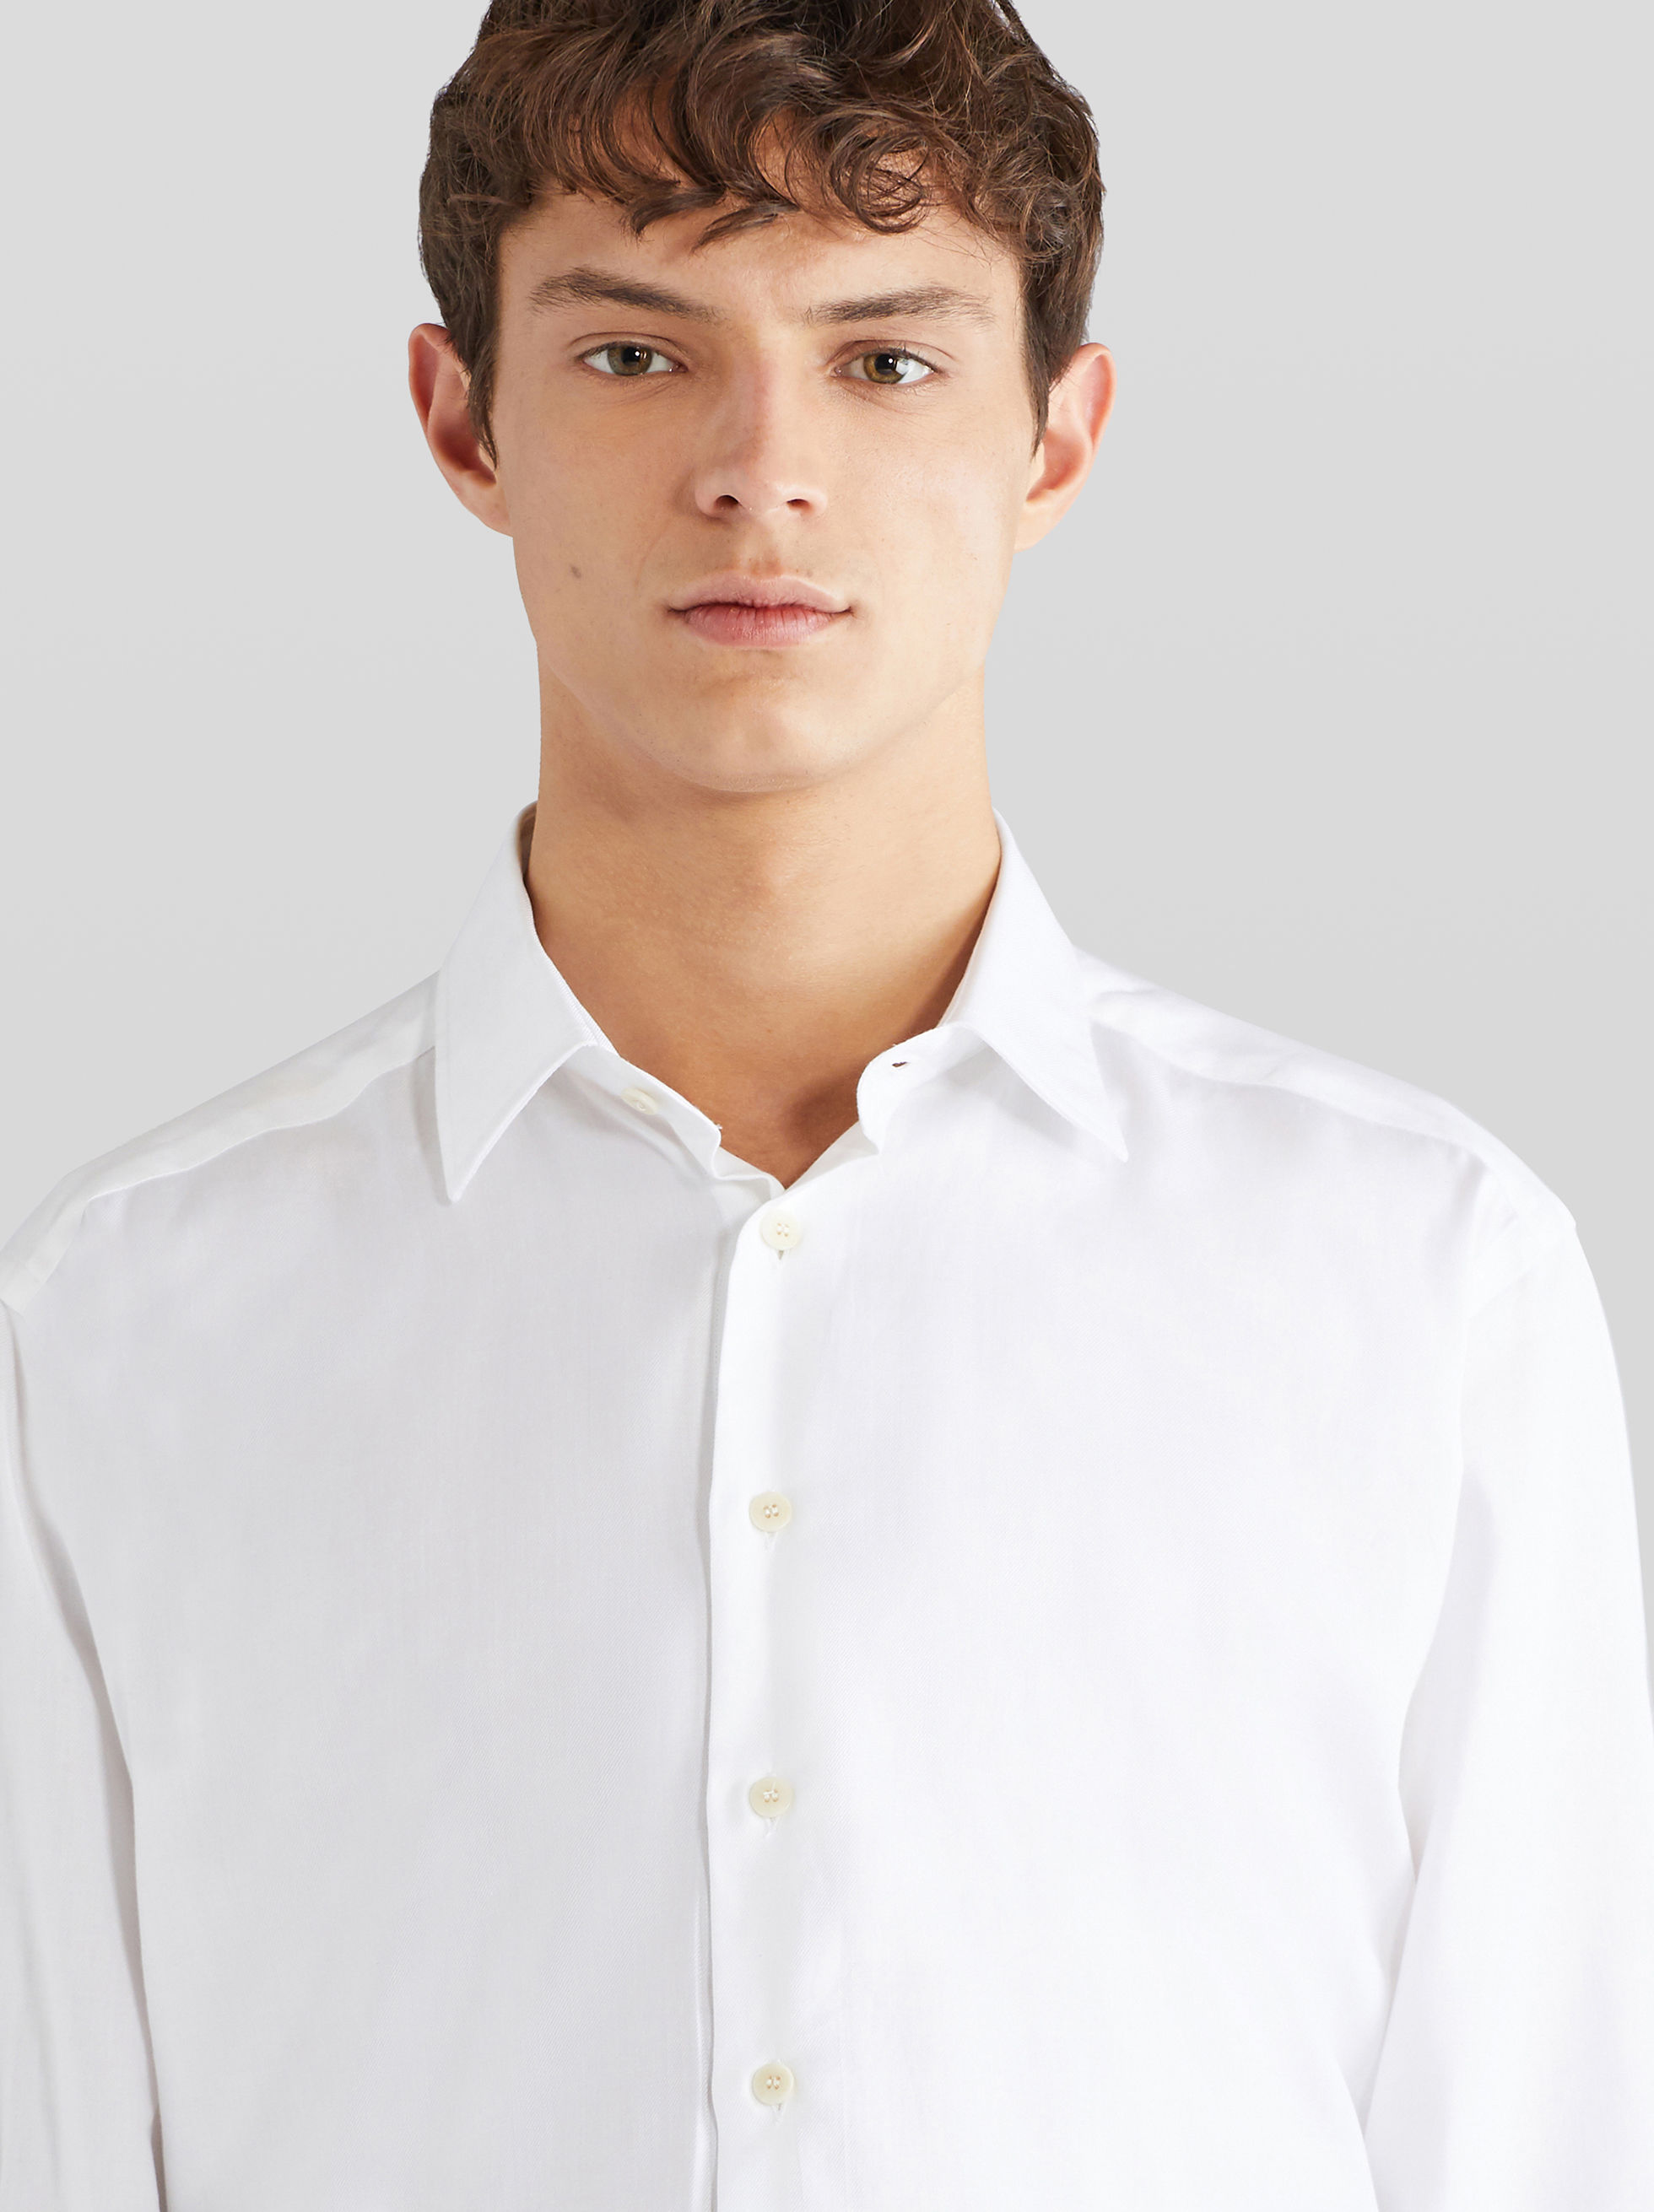 ORGANIC COTTON AND TENCEL ™ - LYOCELL BENETROESSERE SHIRT